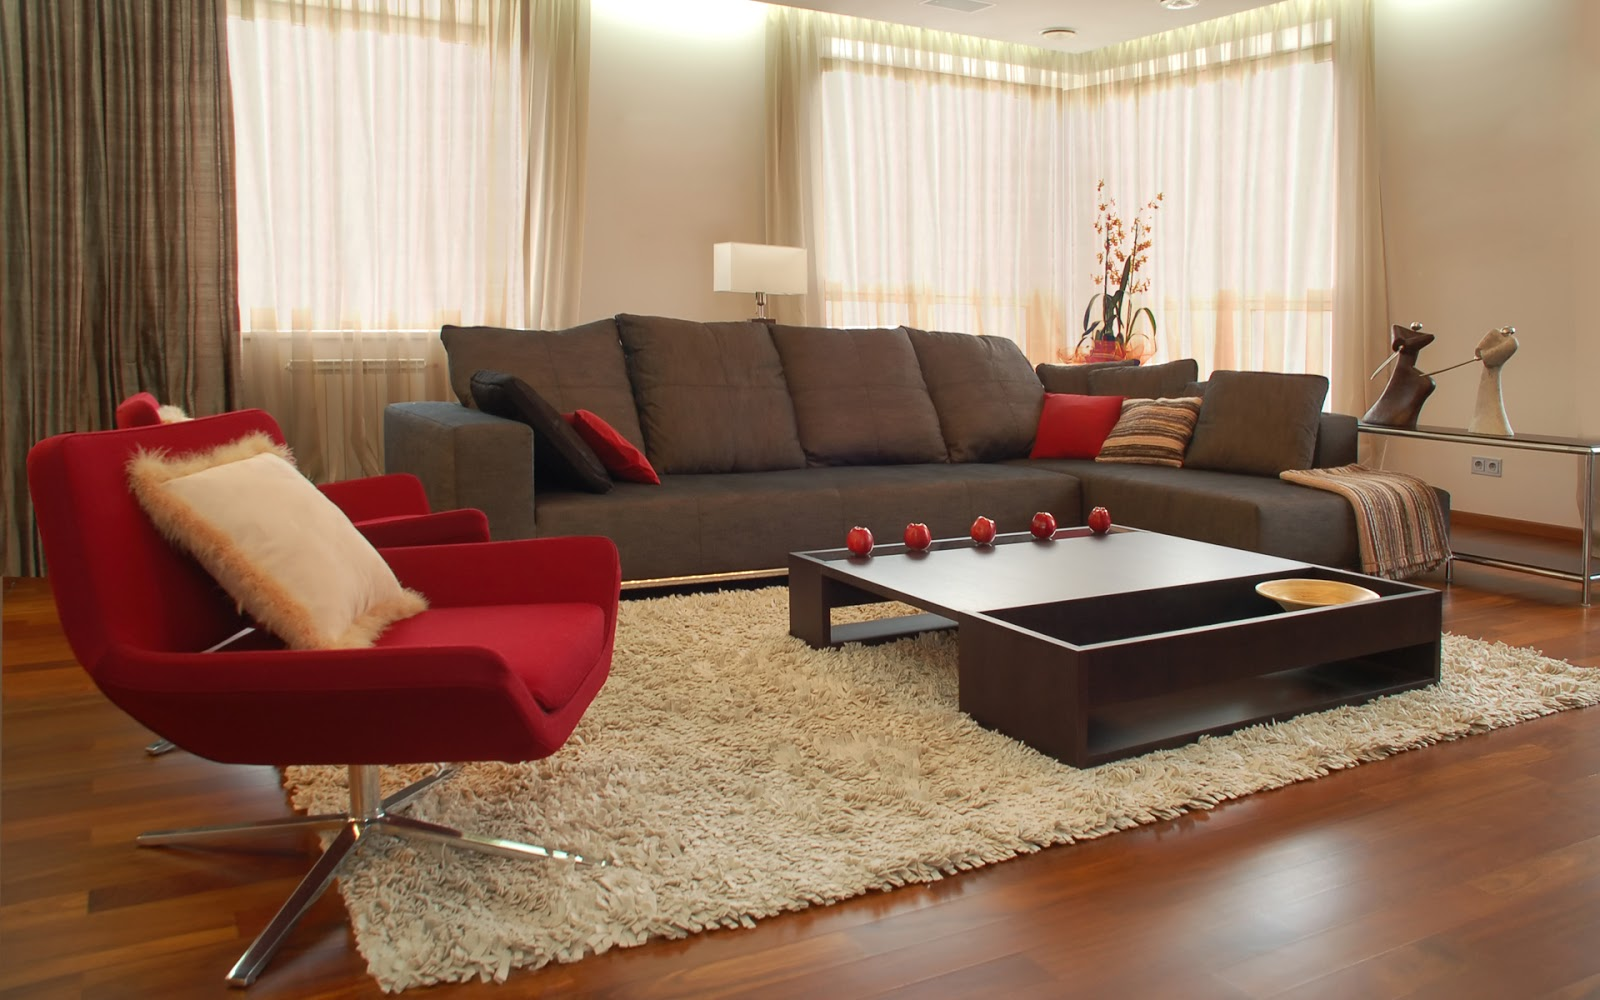 Living Room House Decorating Ideas Pictures house decorating ideas on a budget best inspiring interior budget